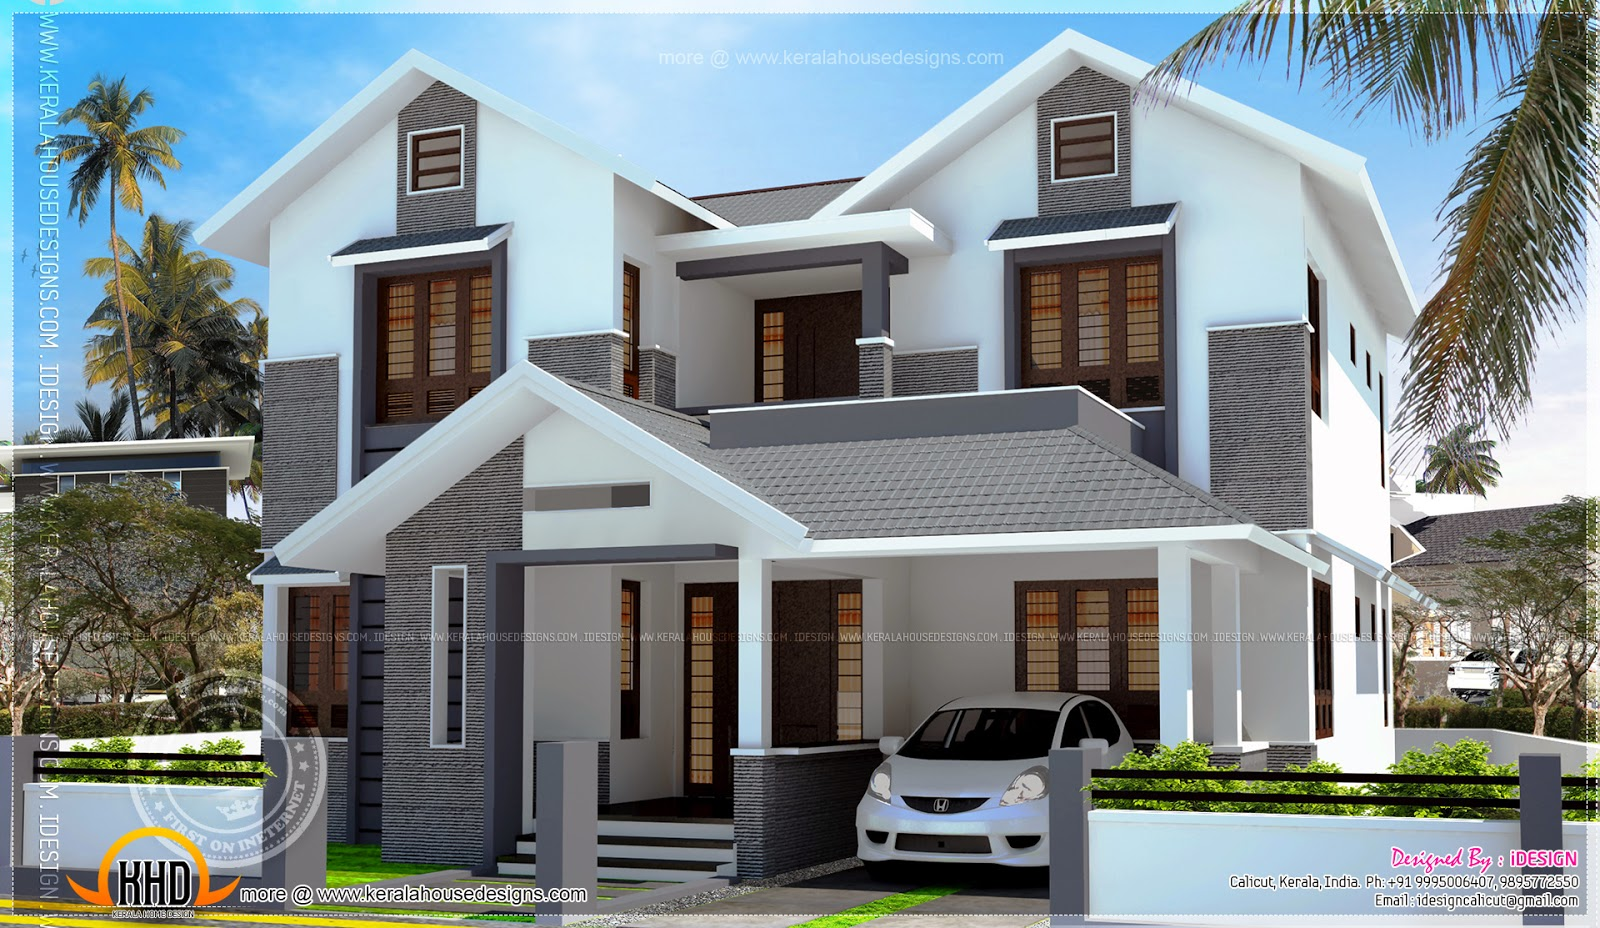 2200 sqfeet modern sloping roof house with cost Kerala home